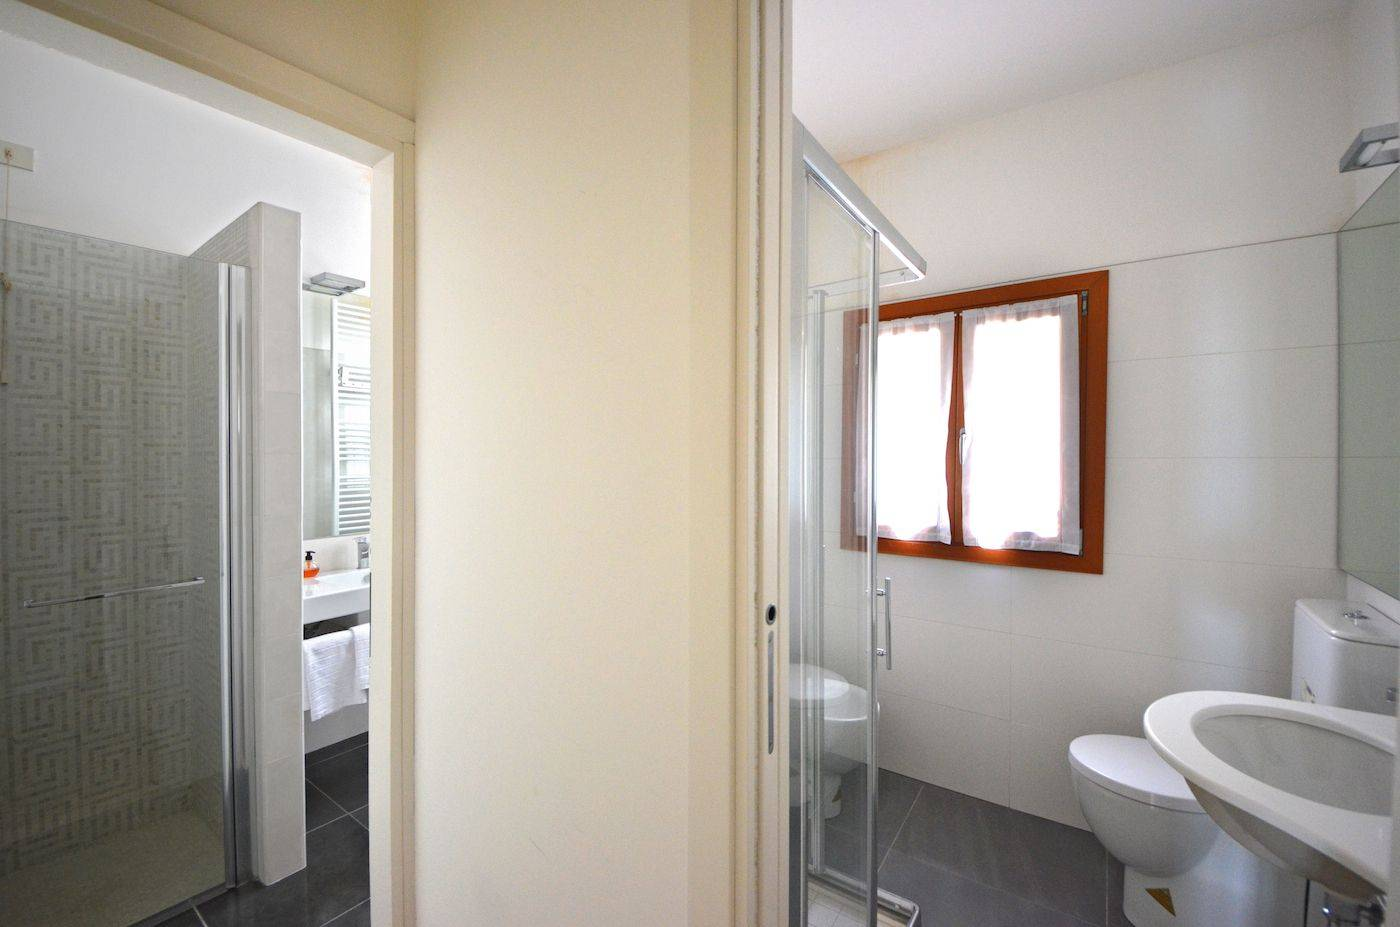 the two nice bathrooms can be accessed from the entrance room